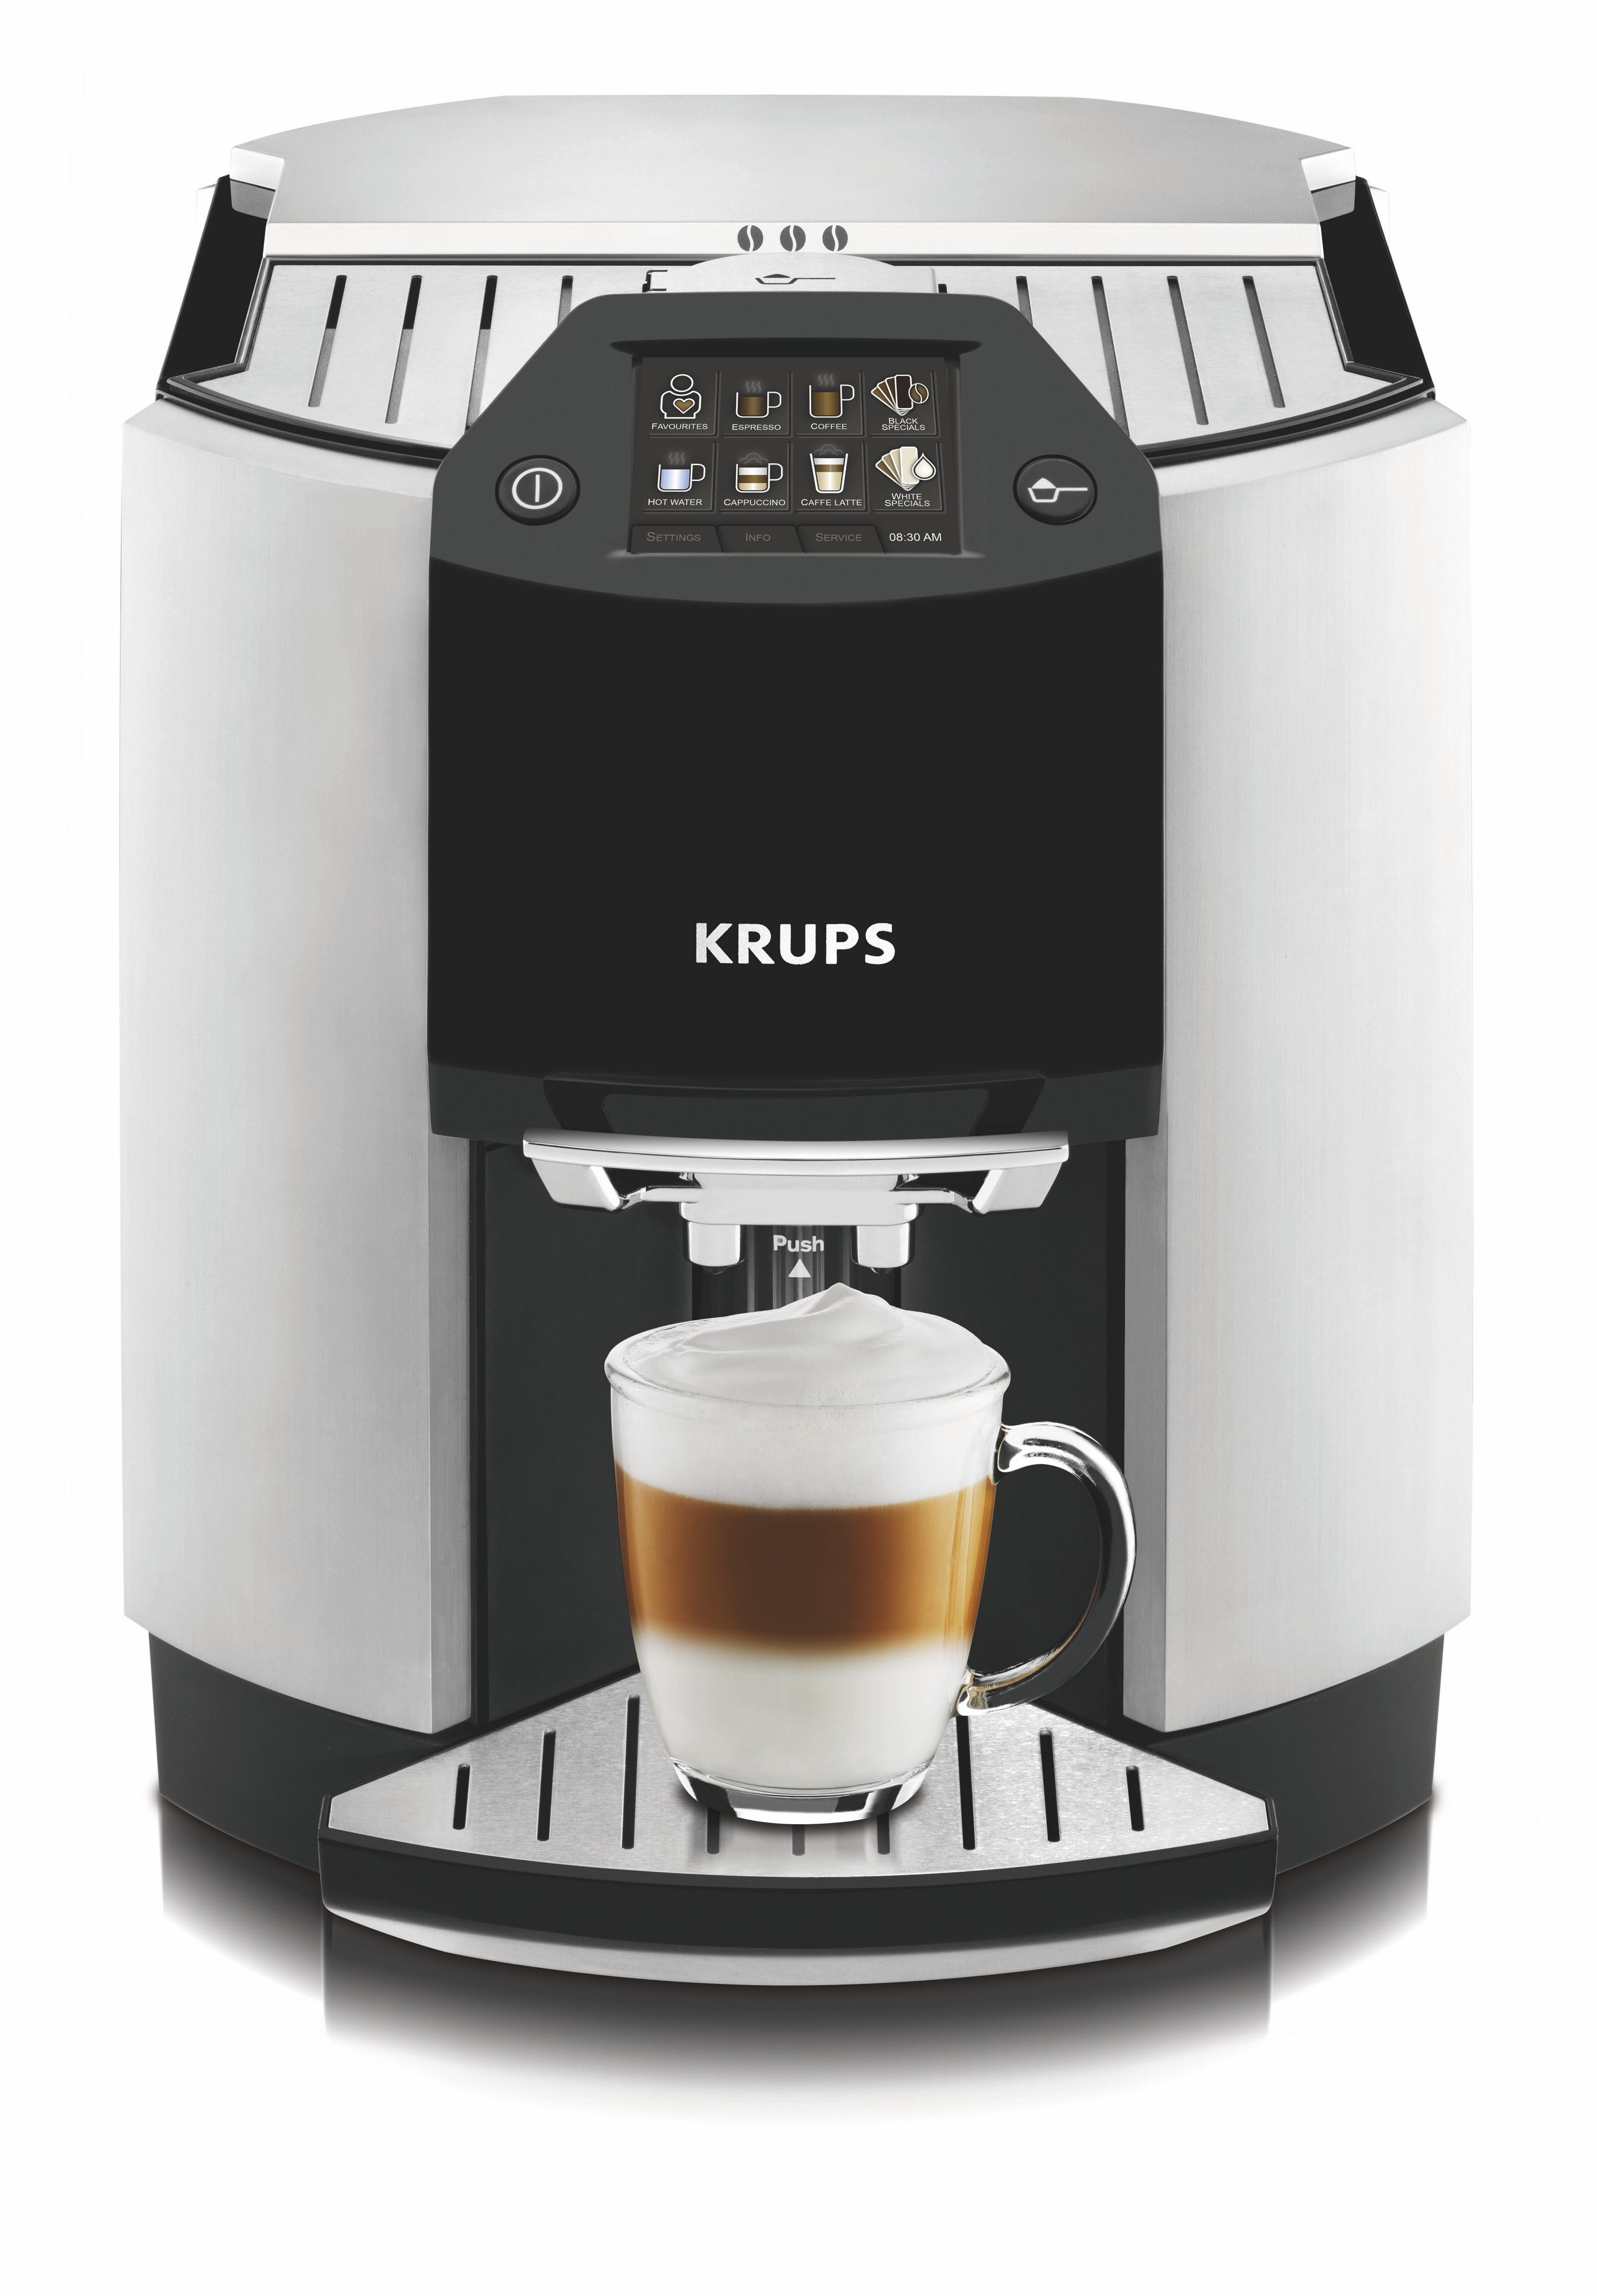 Krups Espresseria Automatic Bean to Cup Coffee Machine